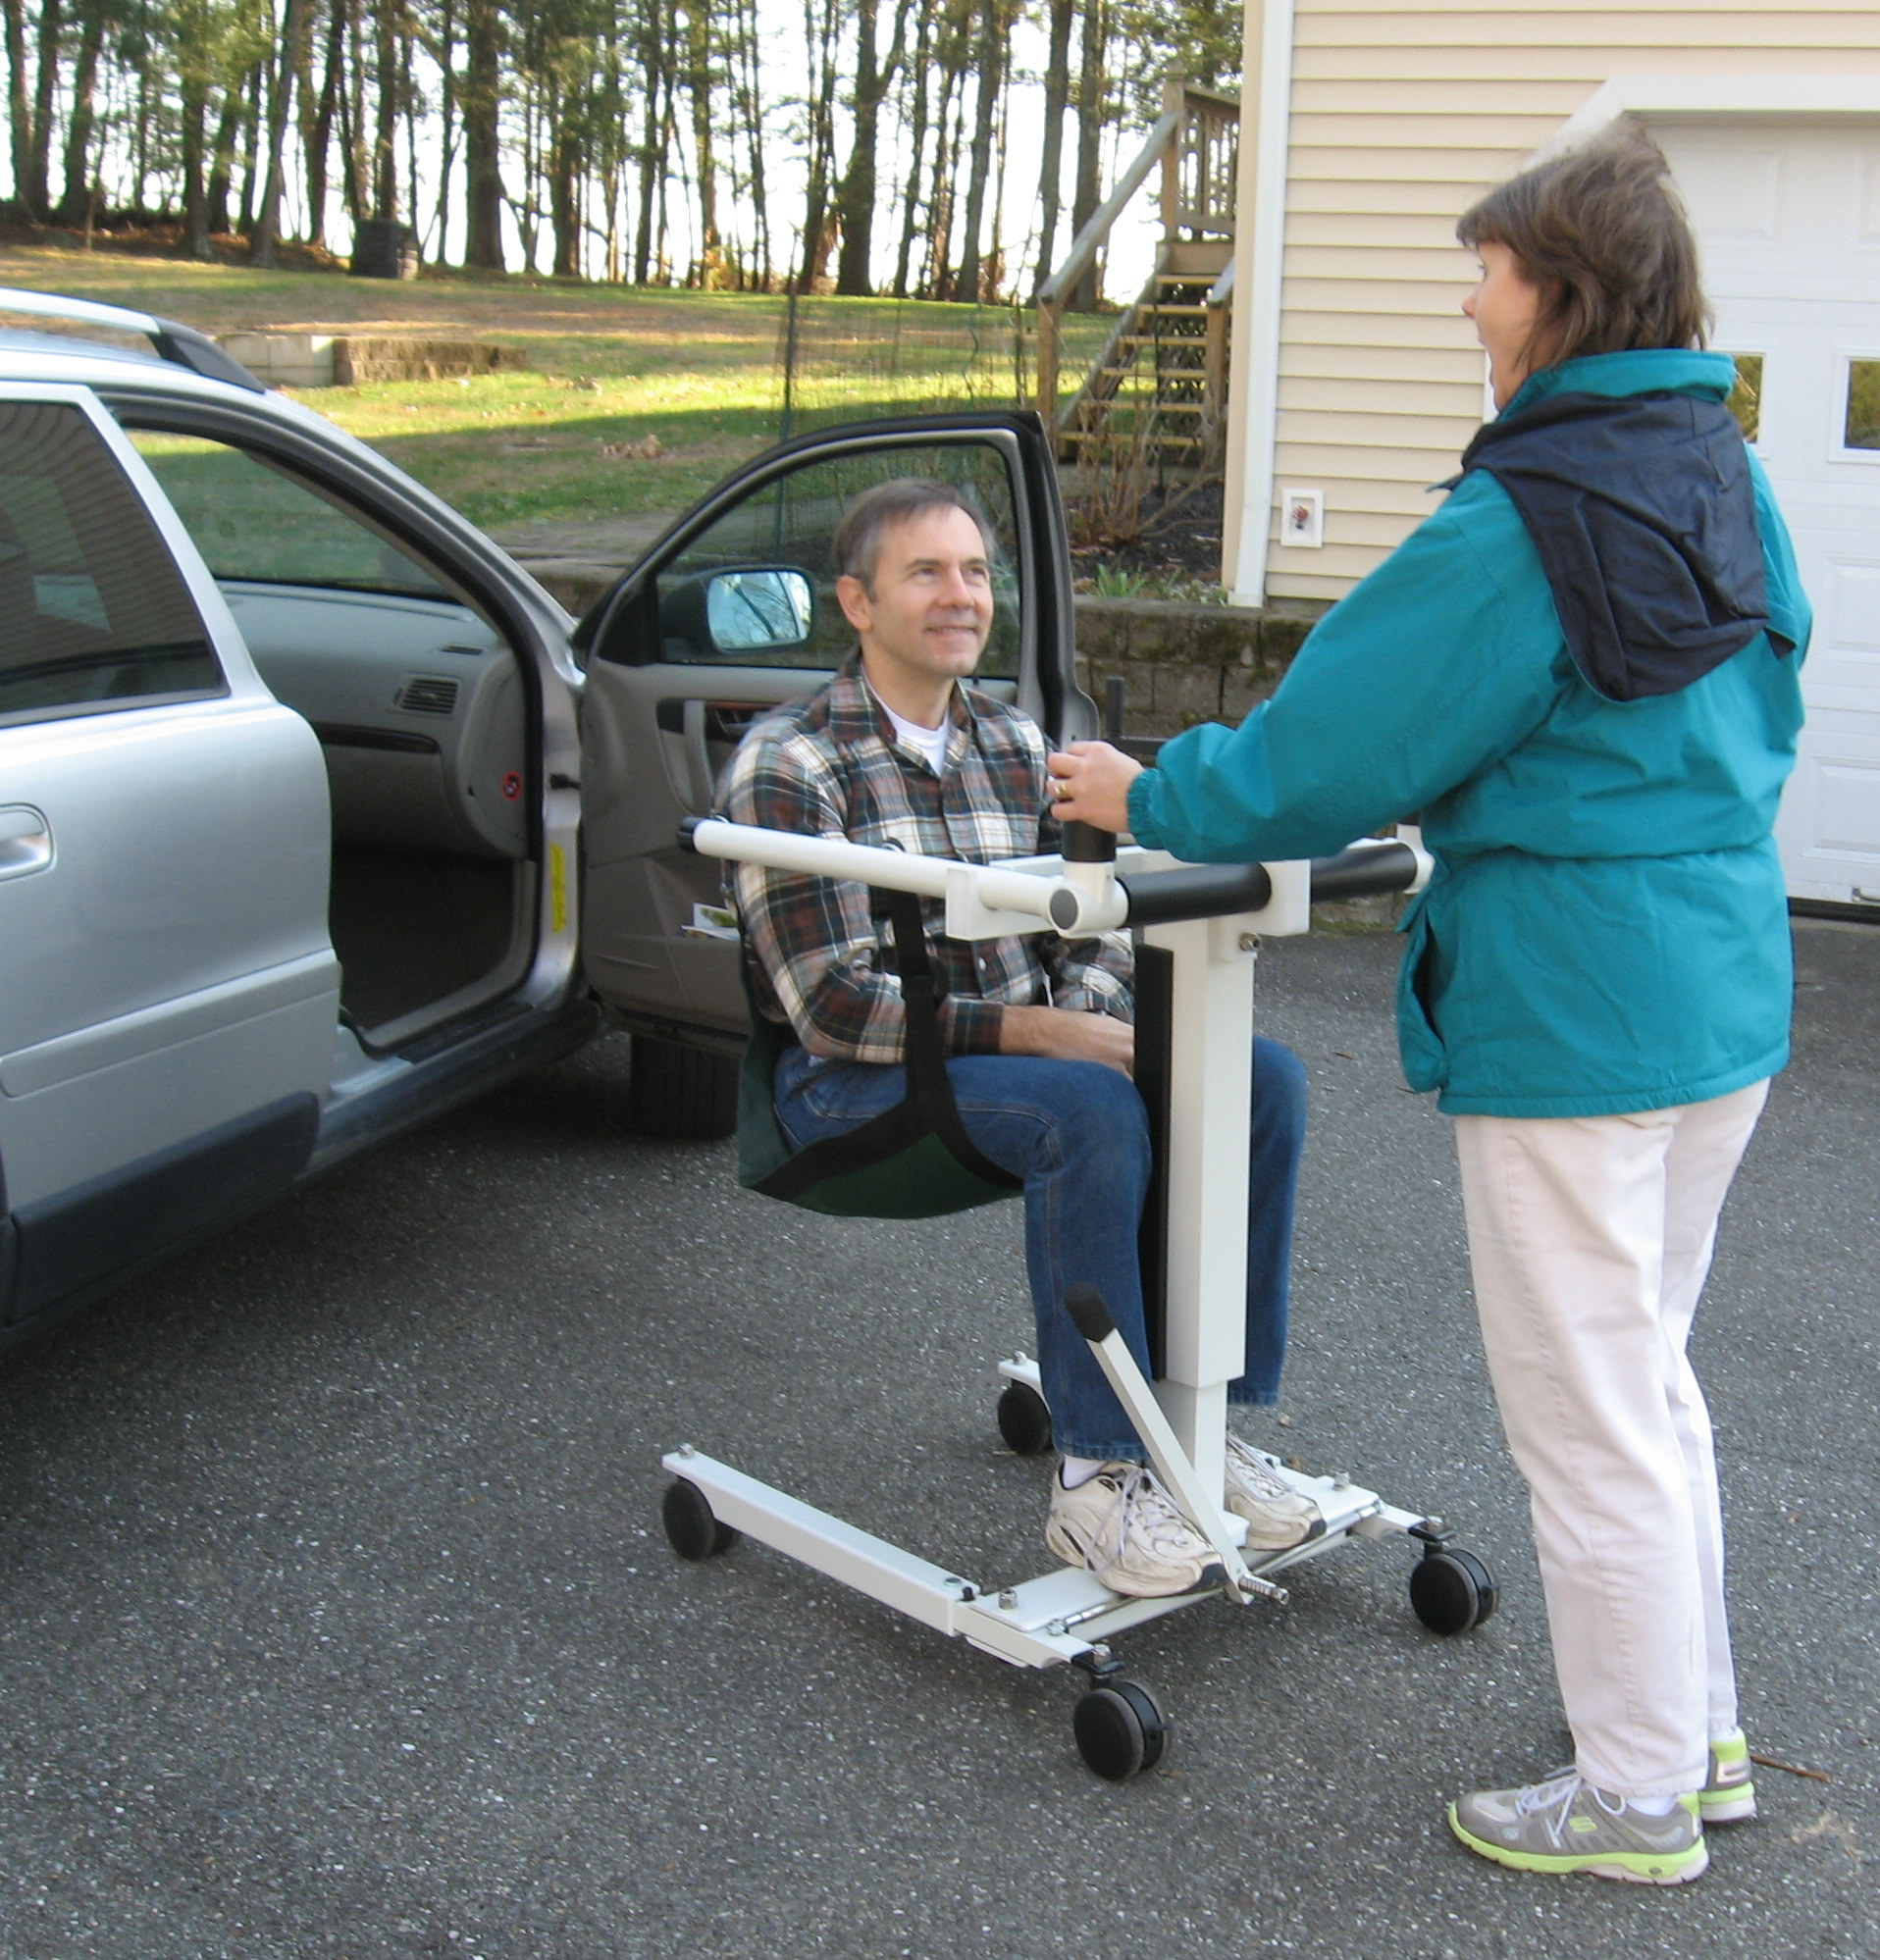 Auto Lifts For Disabled : Portable handicap patient lift take along lifts